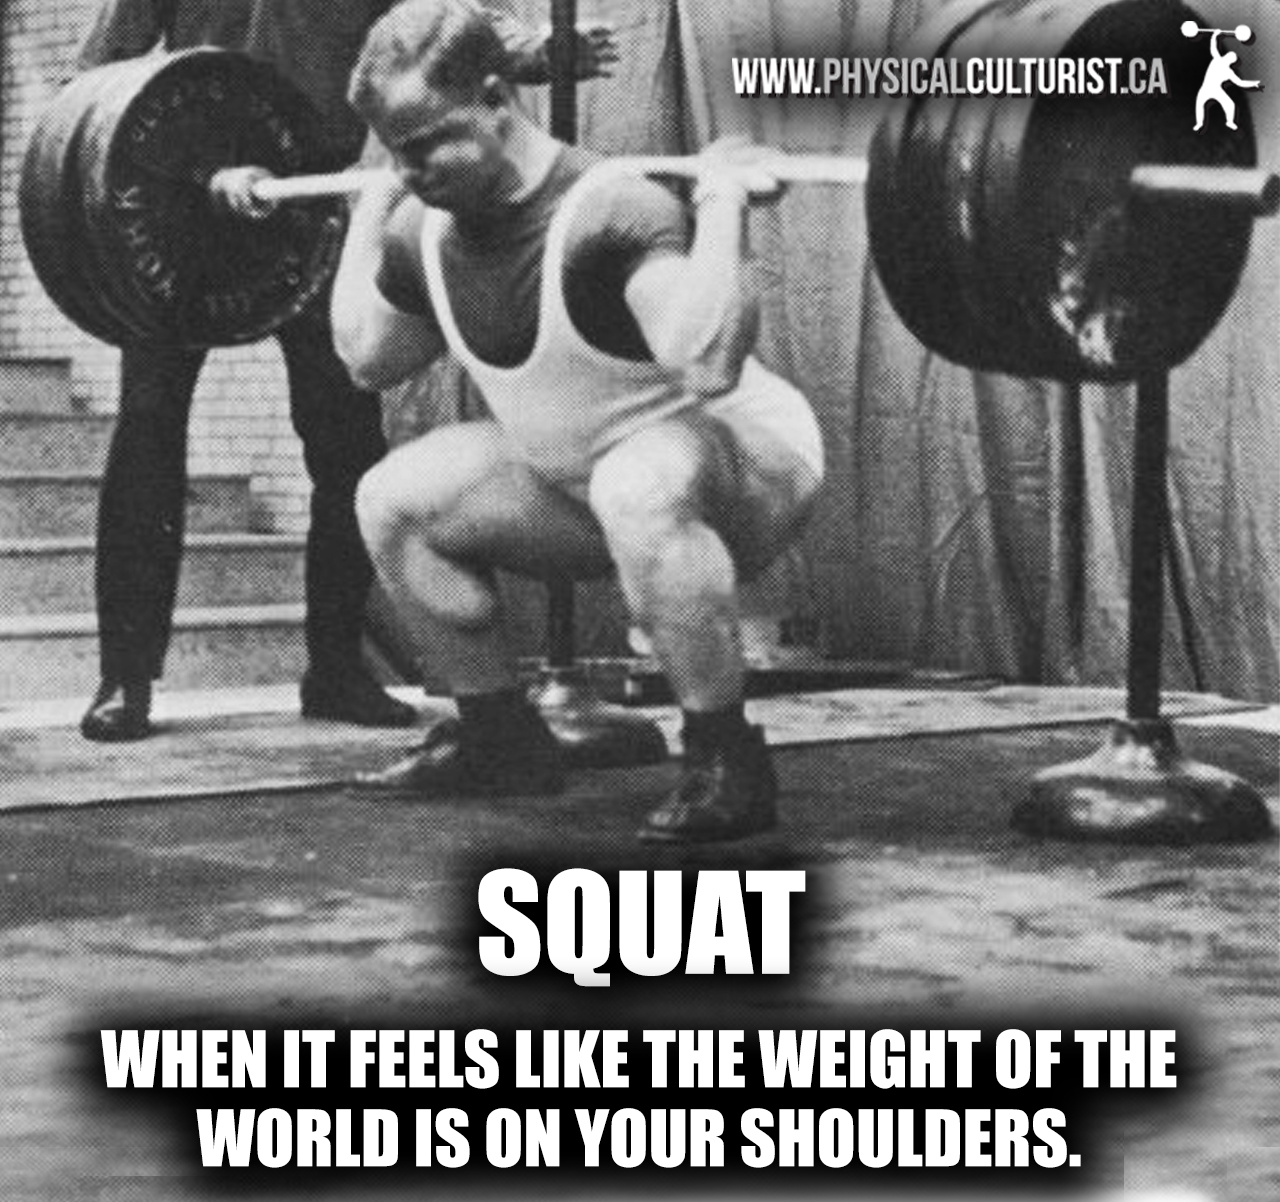 squat - when it feels like the weight of the world is on your shoulders